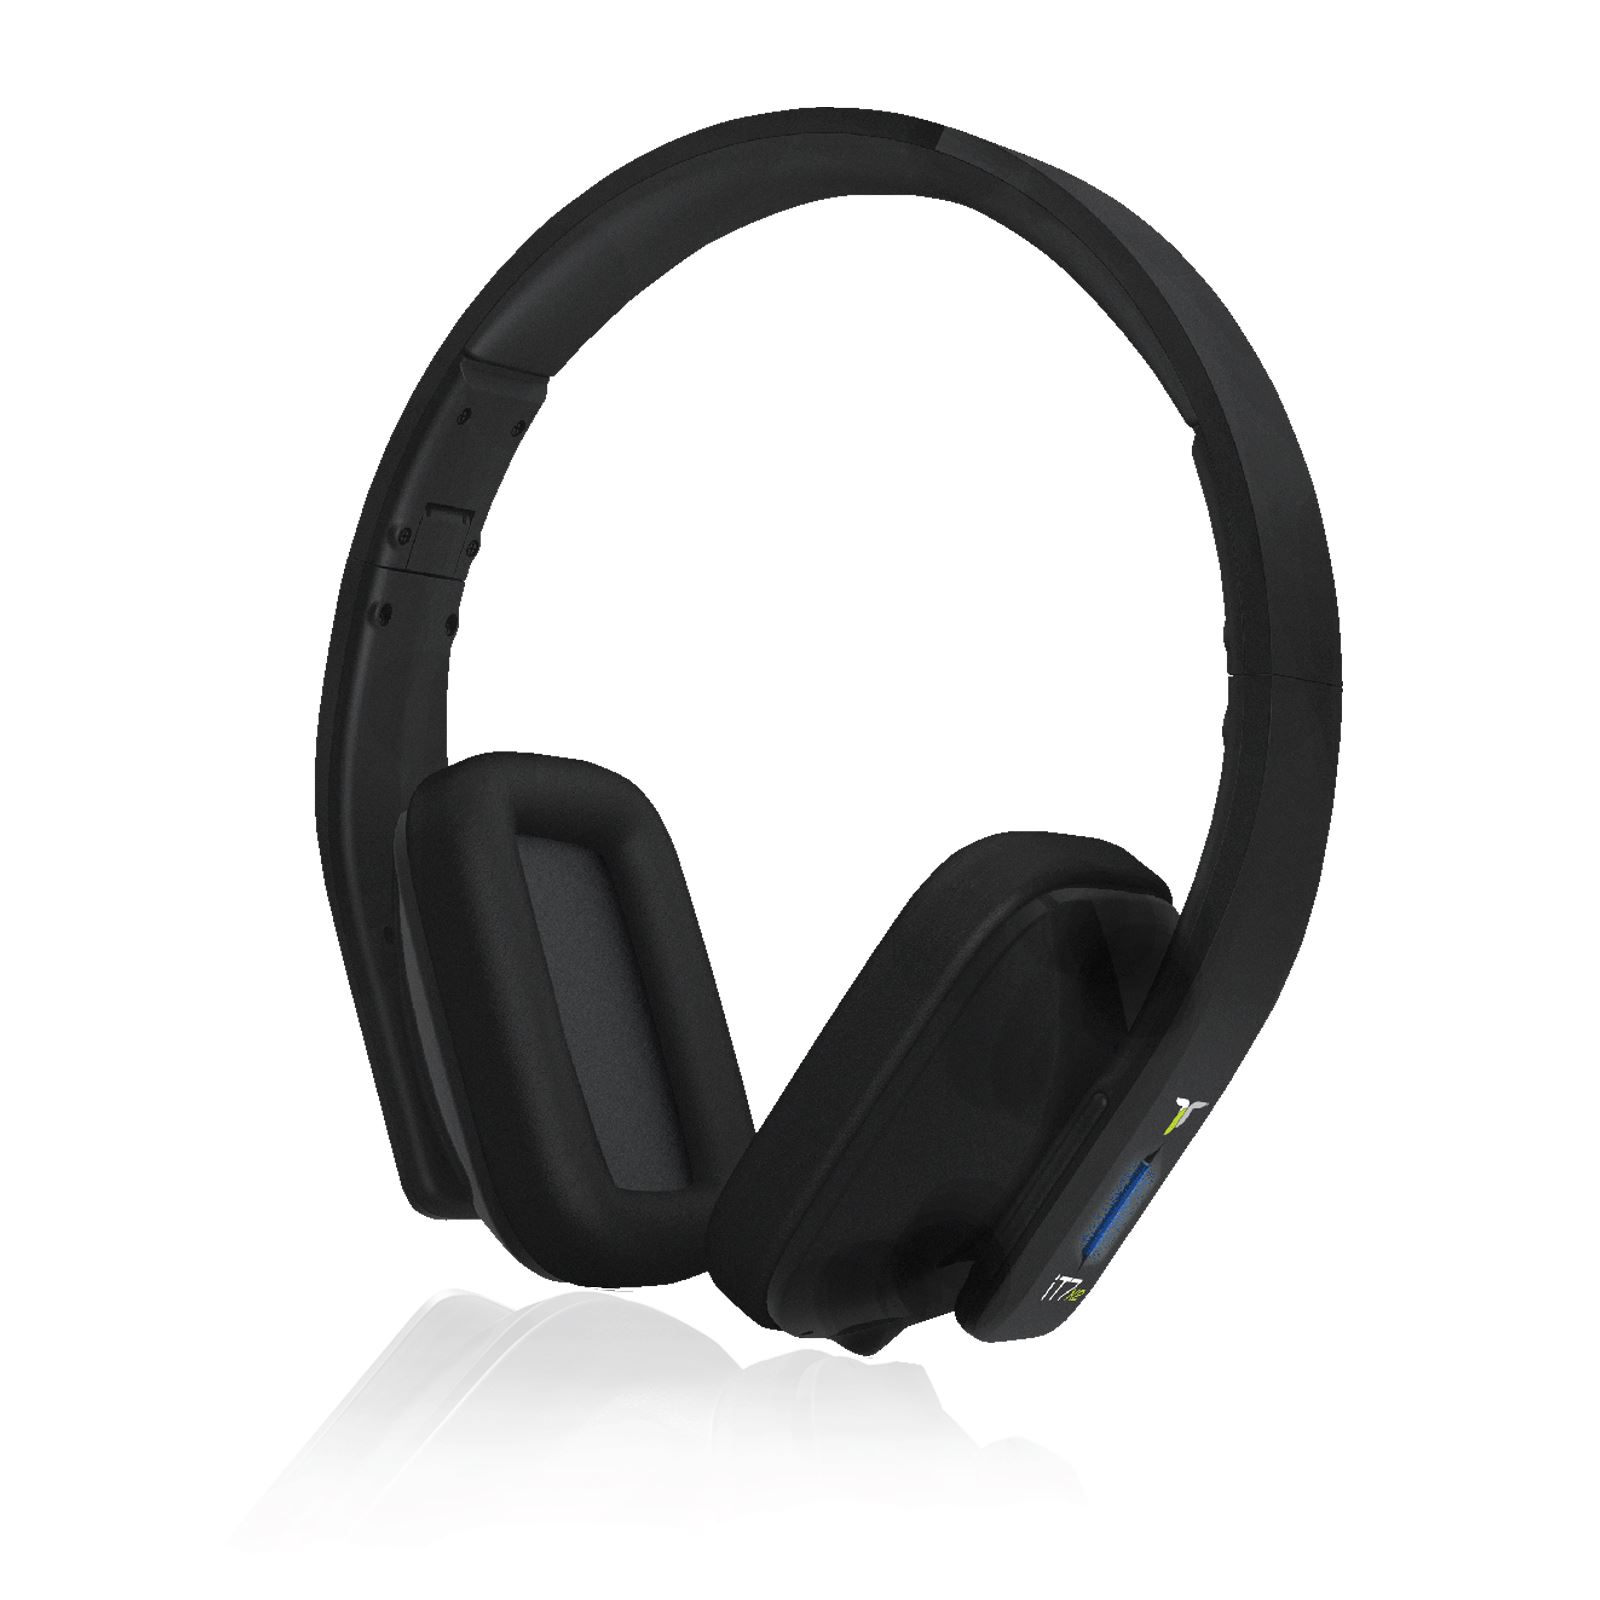 genuine it7x2 bluetooth headphones headset for iphone android galaxy xperia ebay. Black Bedroom Furniture Sets. Home Design Ideas